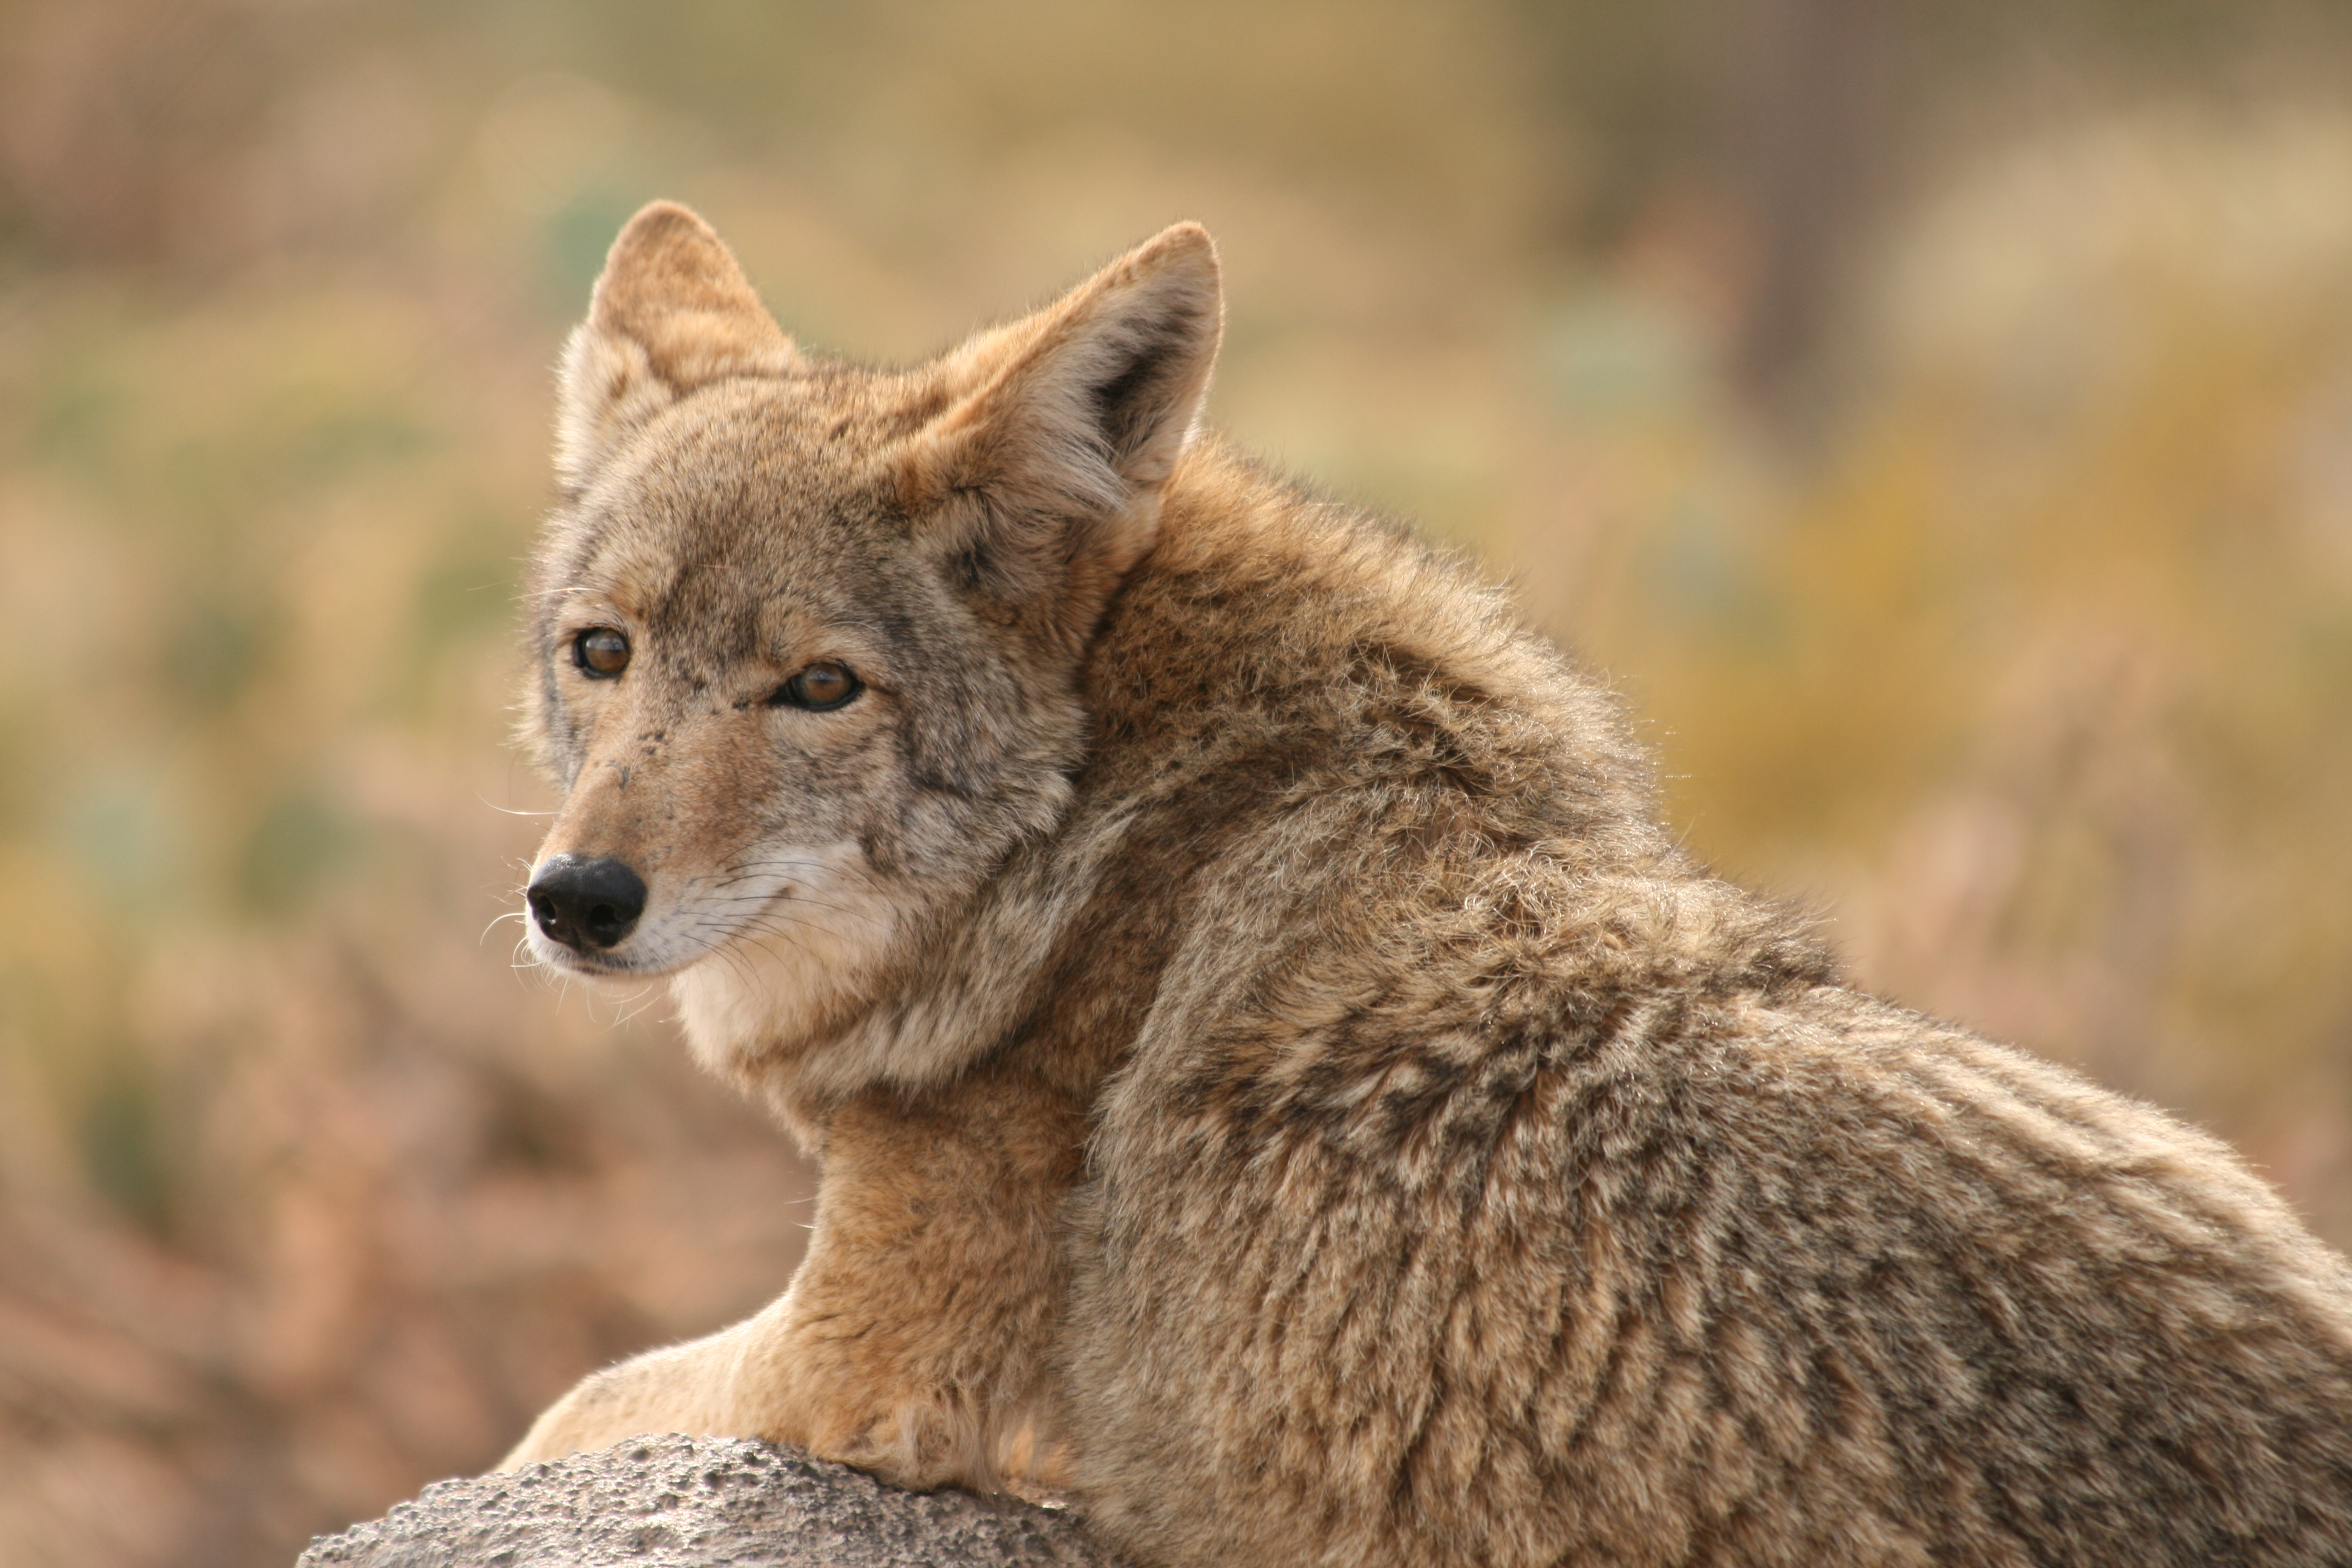 Coyote Sounds The Major Types And Their Uses